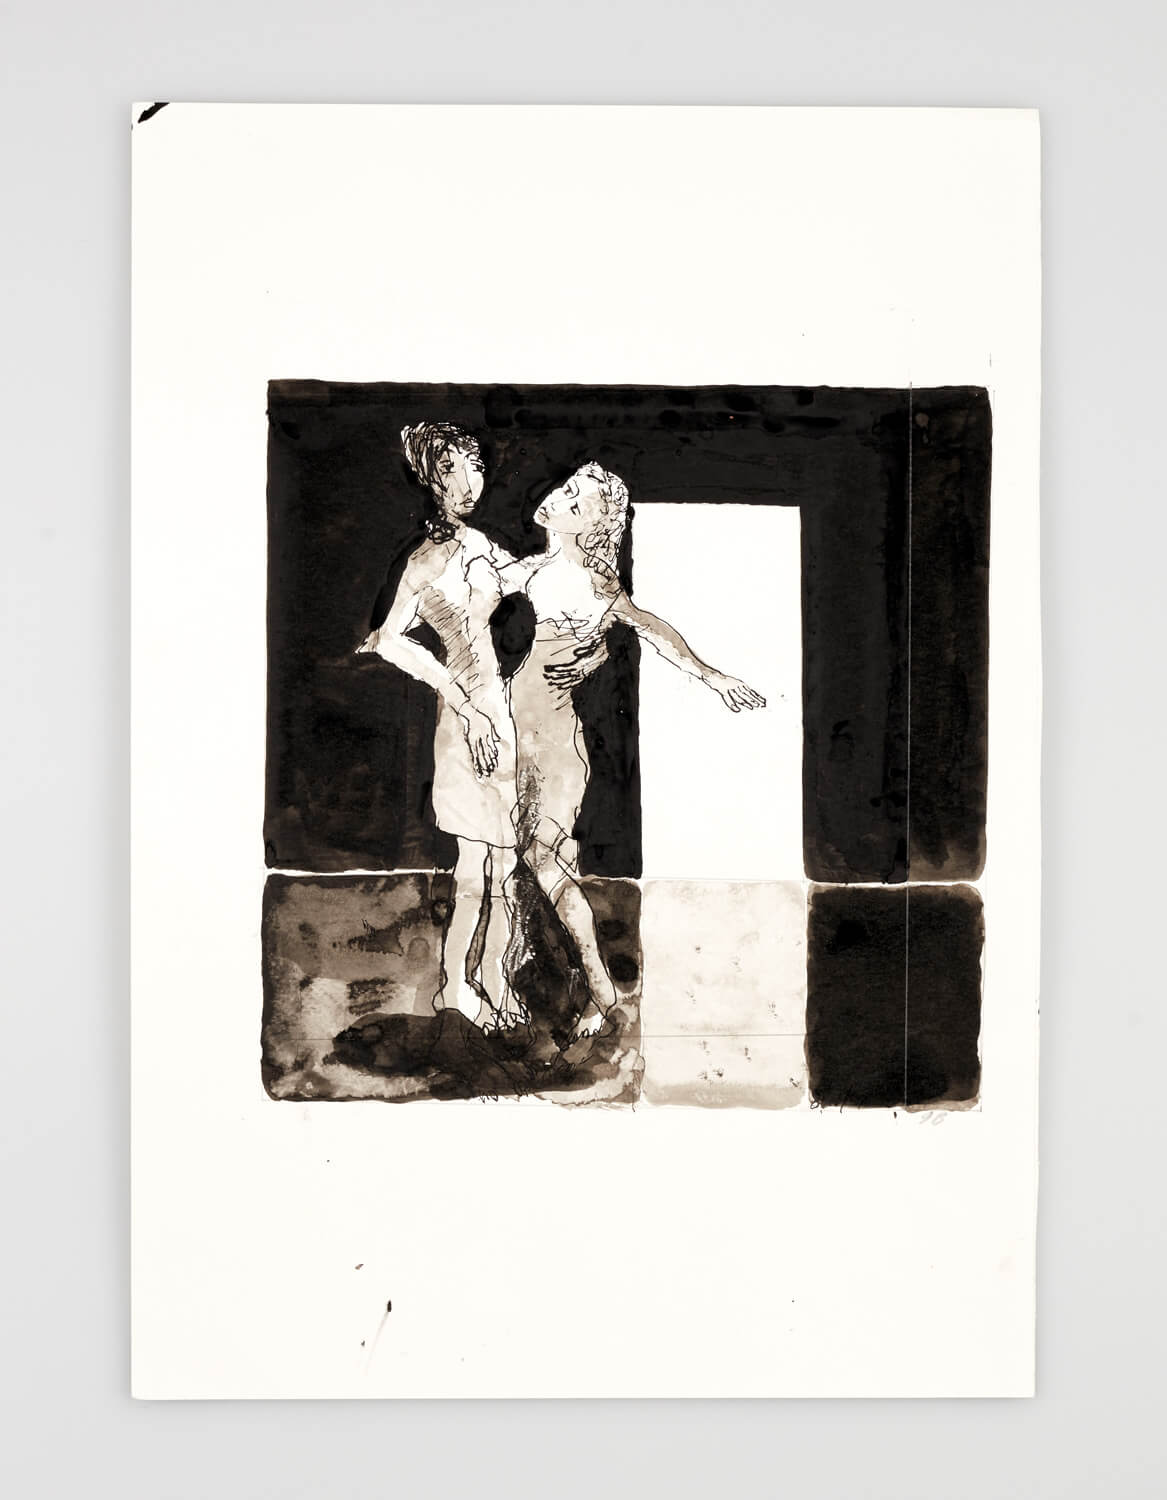 JB023 - Two Women - do you love me_ - 2001 - 50 x 35 cm - Indian ink and wash on paper